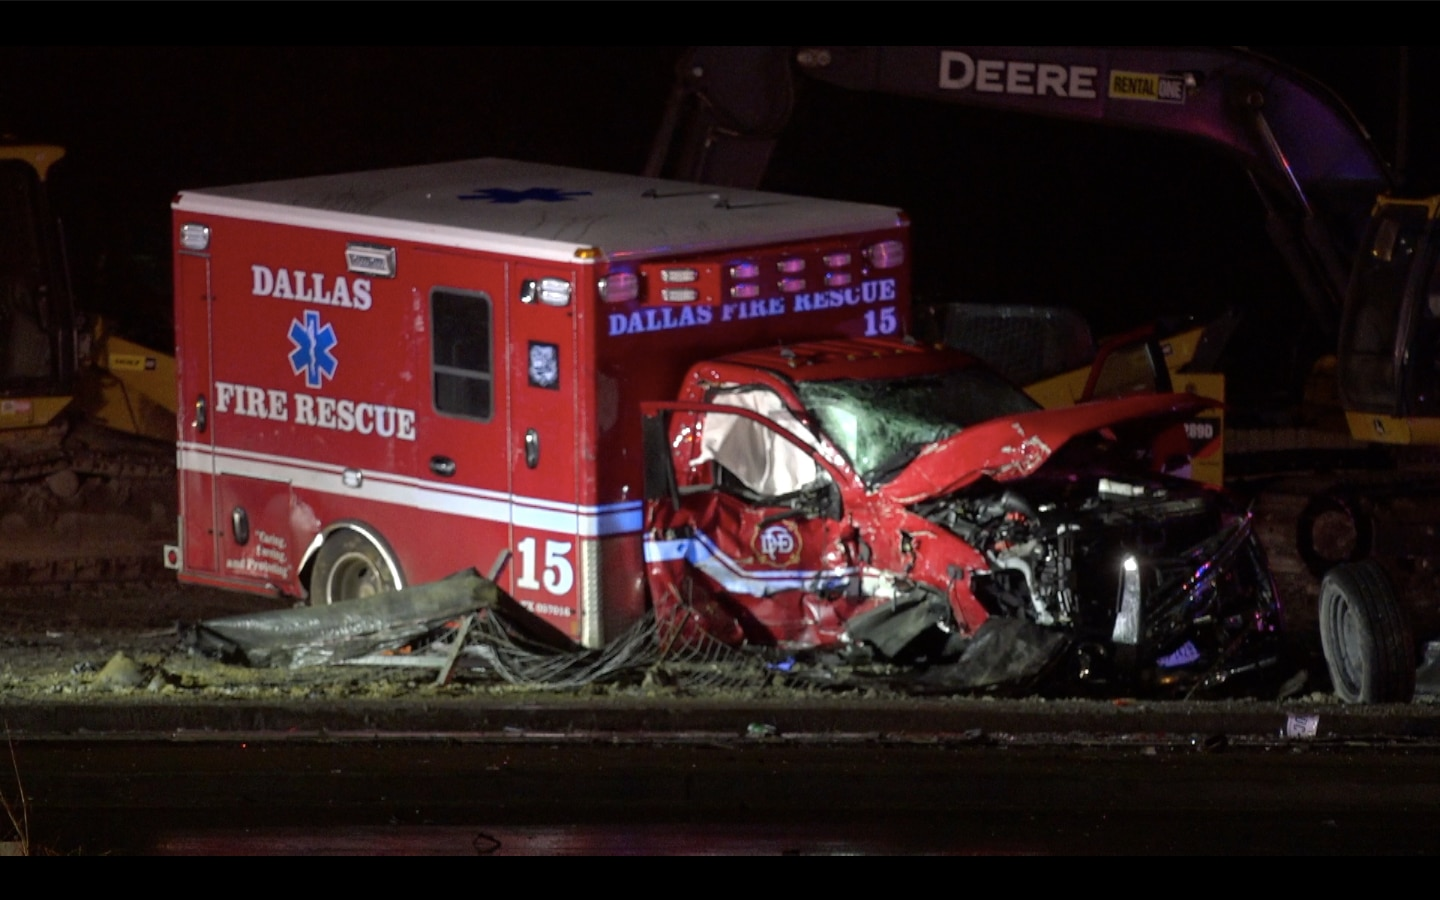 A driver in a pickup truck crashed into a Dallas Fire-Rescue ambulance early Sunday morning in west Oak Cliff. The crash sent two medics in the ambulance and the pickup truck driver to the hospital, where the  driver of the pickup truck was pronounced dead, officials said.